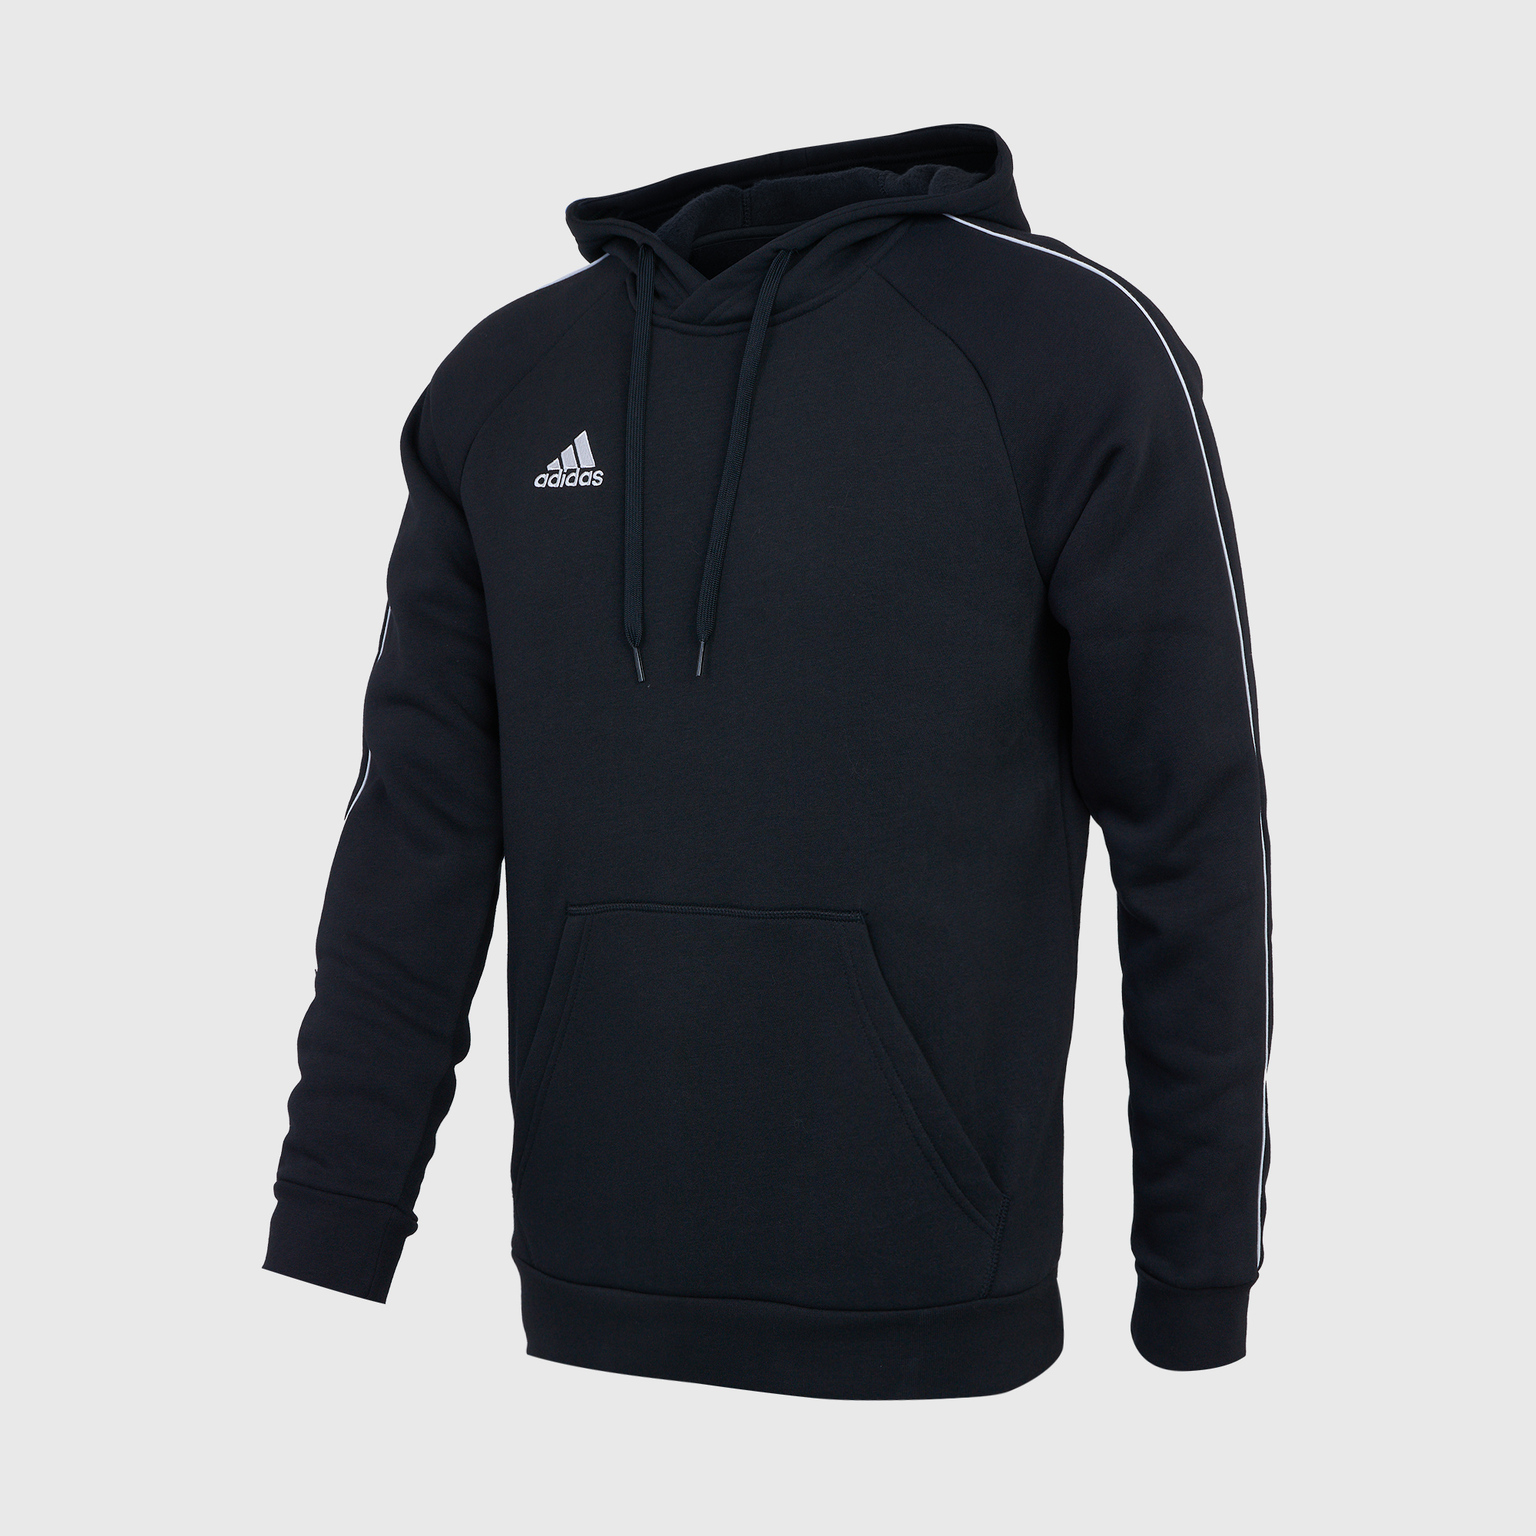 Толстовка Adidas Core18 Hoody CE9068 сникеры nike сникеры wmns nike court borough mid